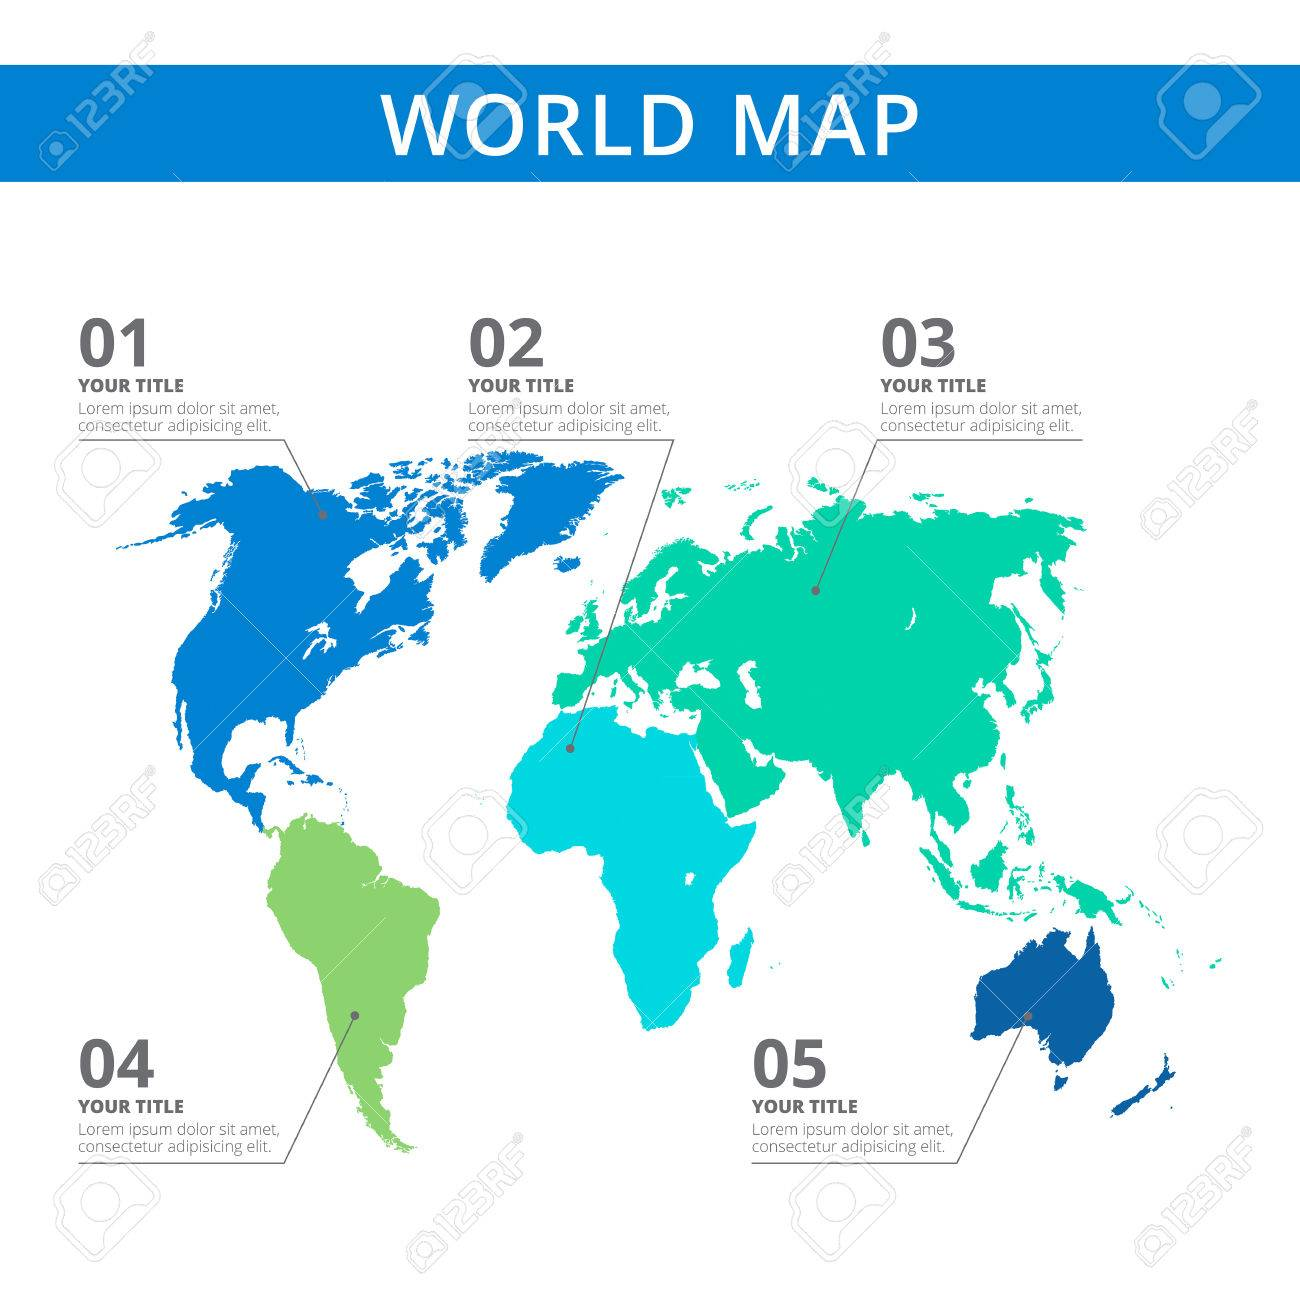 Editable template of detailed world map with continents silhouettes editable template of detailed world map with continents silhouettes and information marks blue and green gumiabroncs Image collections